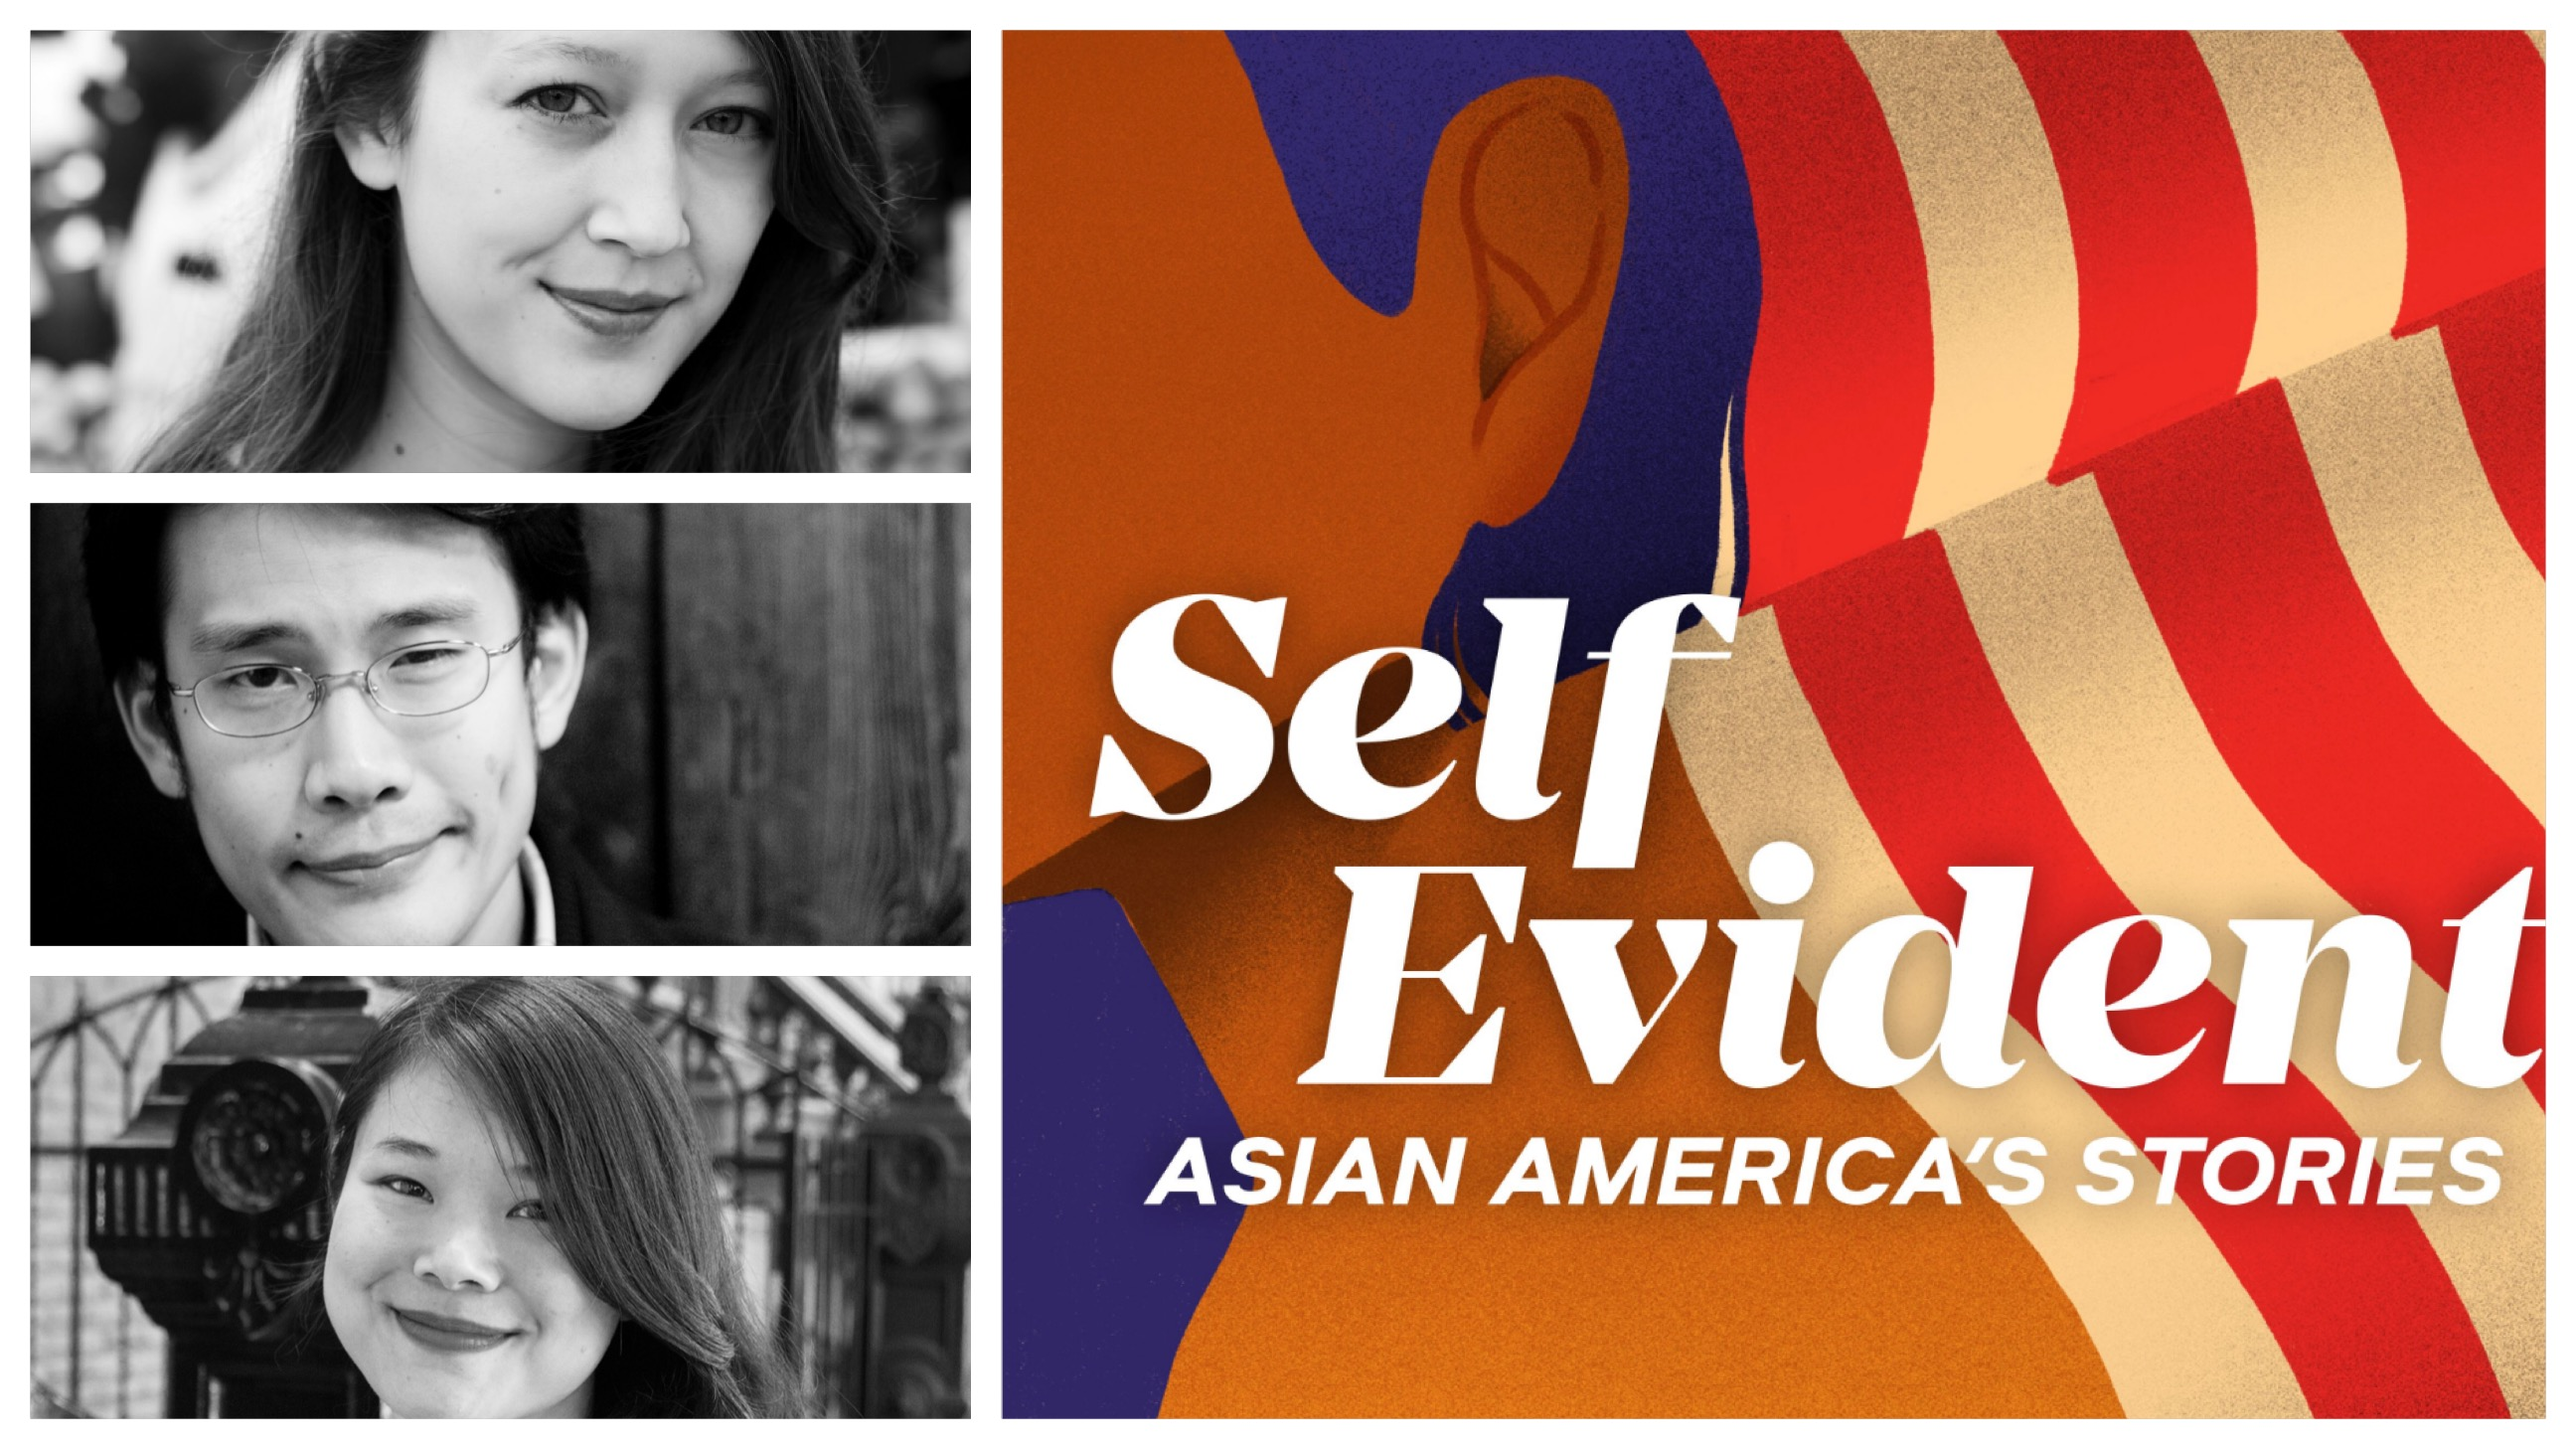 On the left, three Asian American people's faces in black and white headshots; on the right is Self-Evident podcast's logo